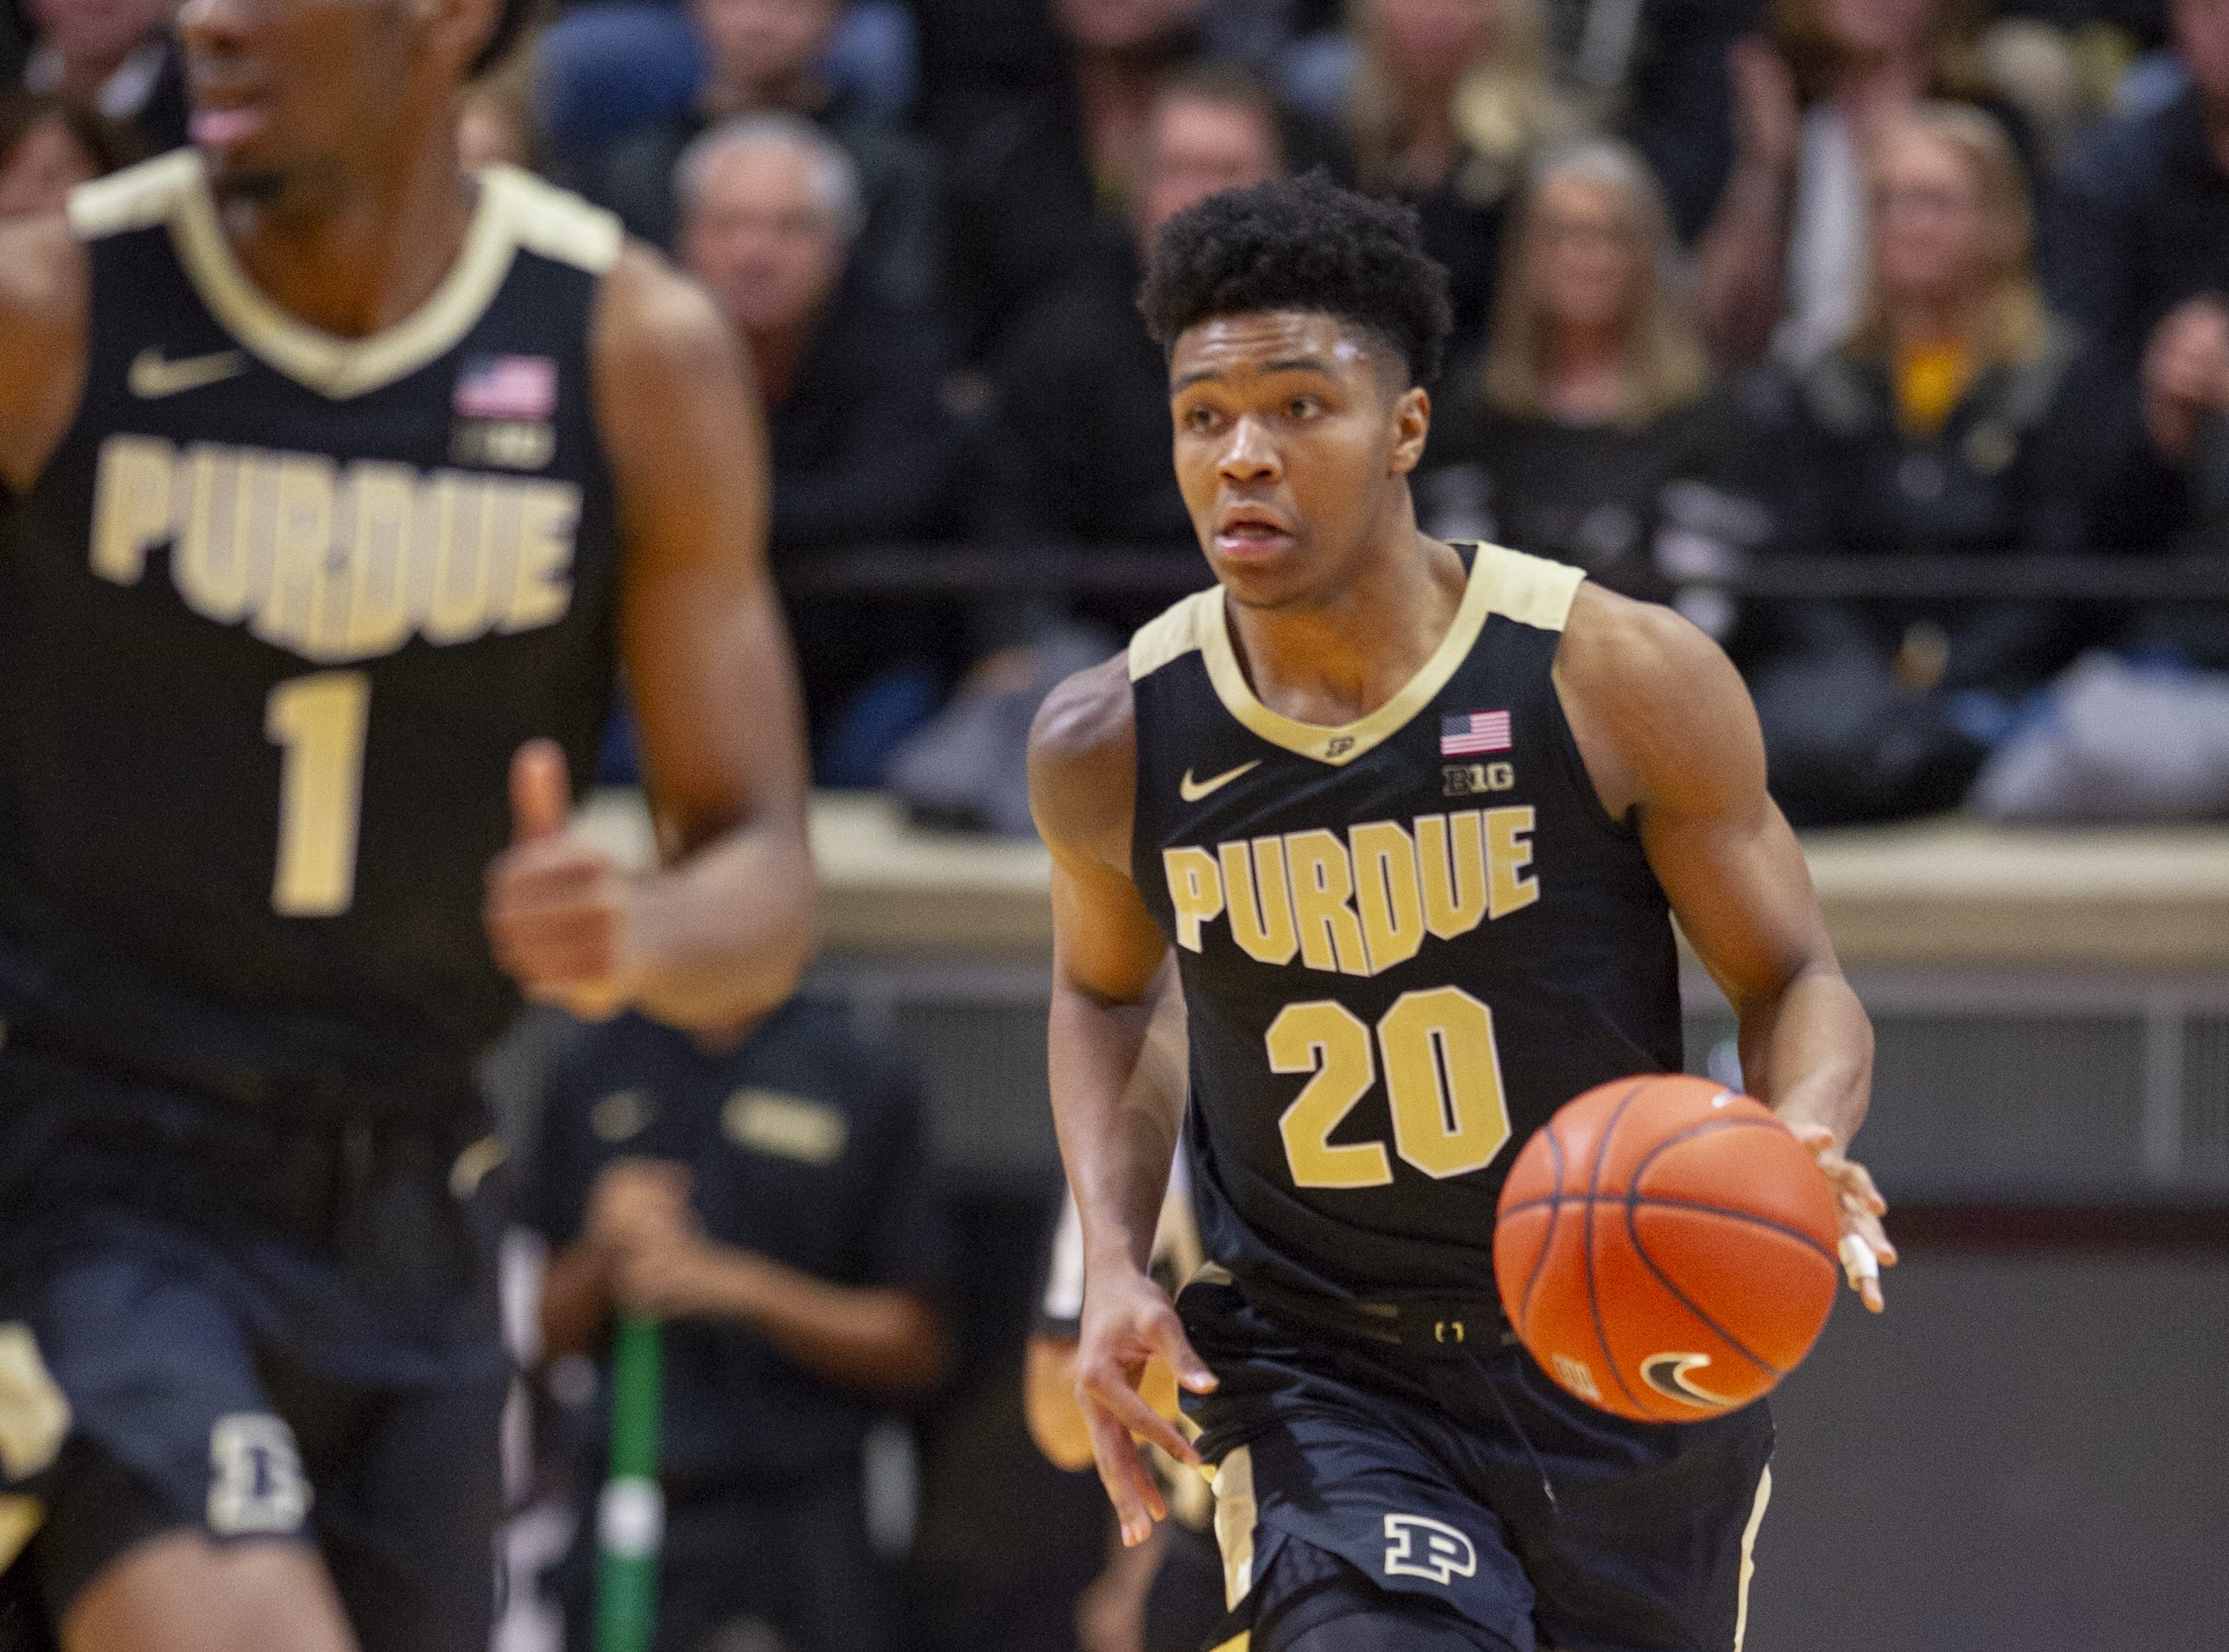 Purdue Boilermakers guard Nojel Eastern (20) brings the ball up court during the second half of action. Purdue hosted Indiana in a BigTen men's basketball matchup, Saturday, Jan. 19, 2019. Purdue won 70-55.